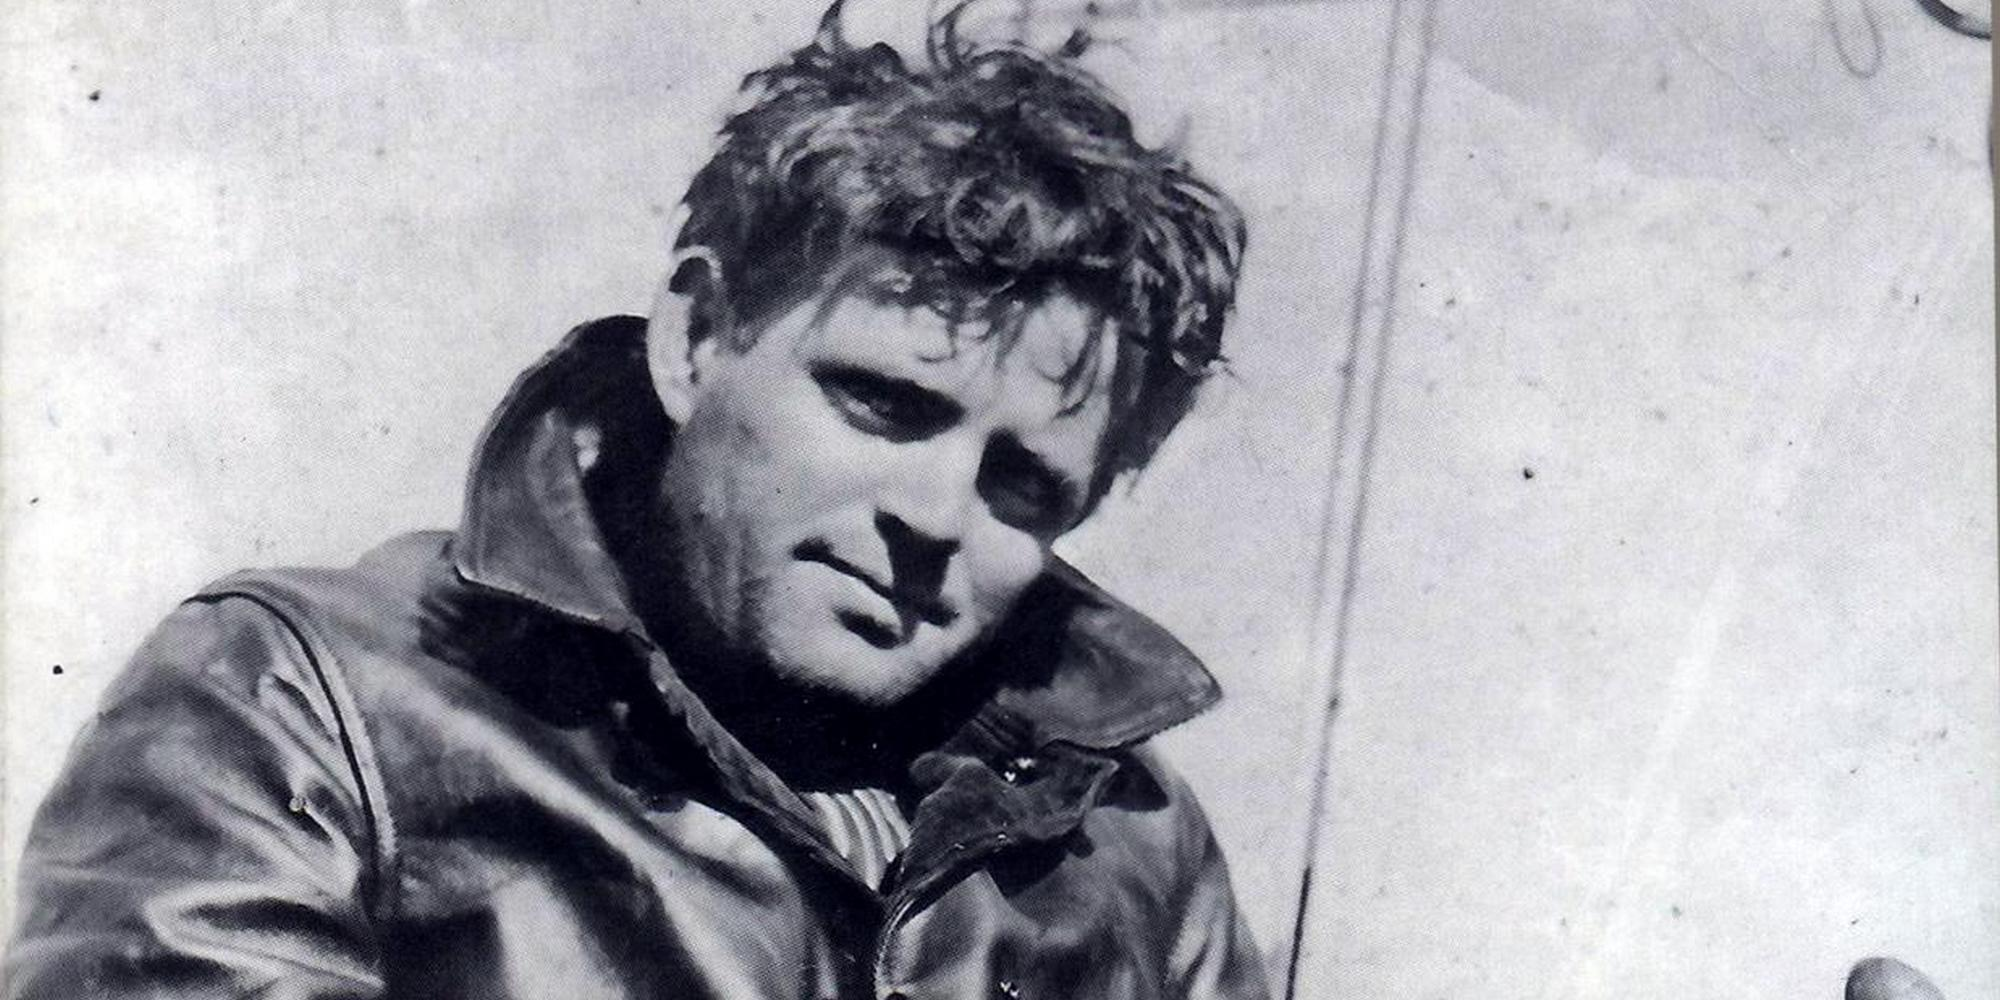 the life and literary works of jack london Jack london, 1876-1916  of the wild, set in the klondike gold rush, as well as  the short stories to build a fire, an odyssey of the north, and love of life.